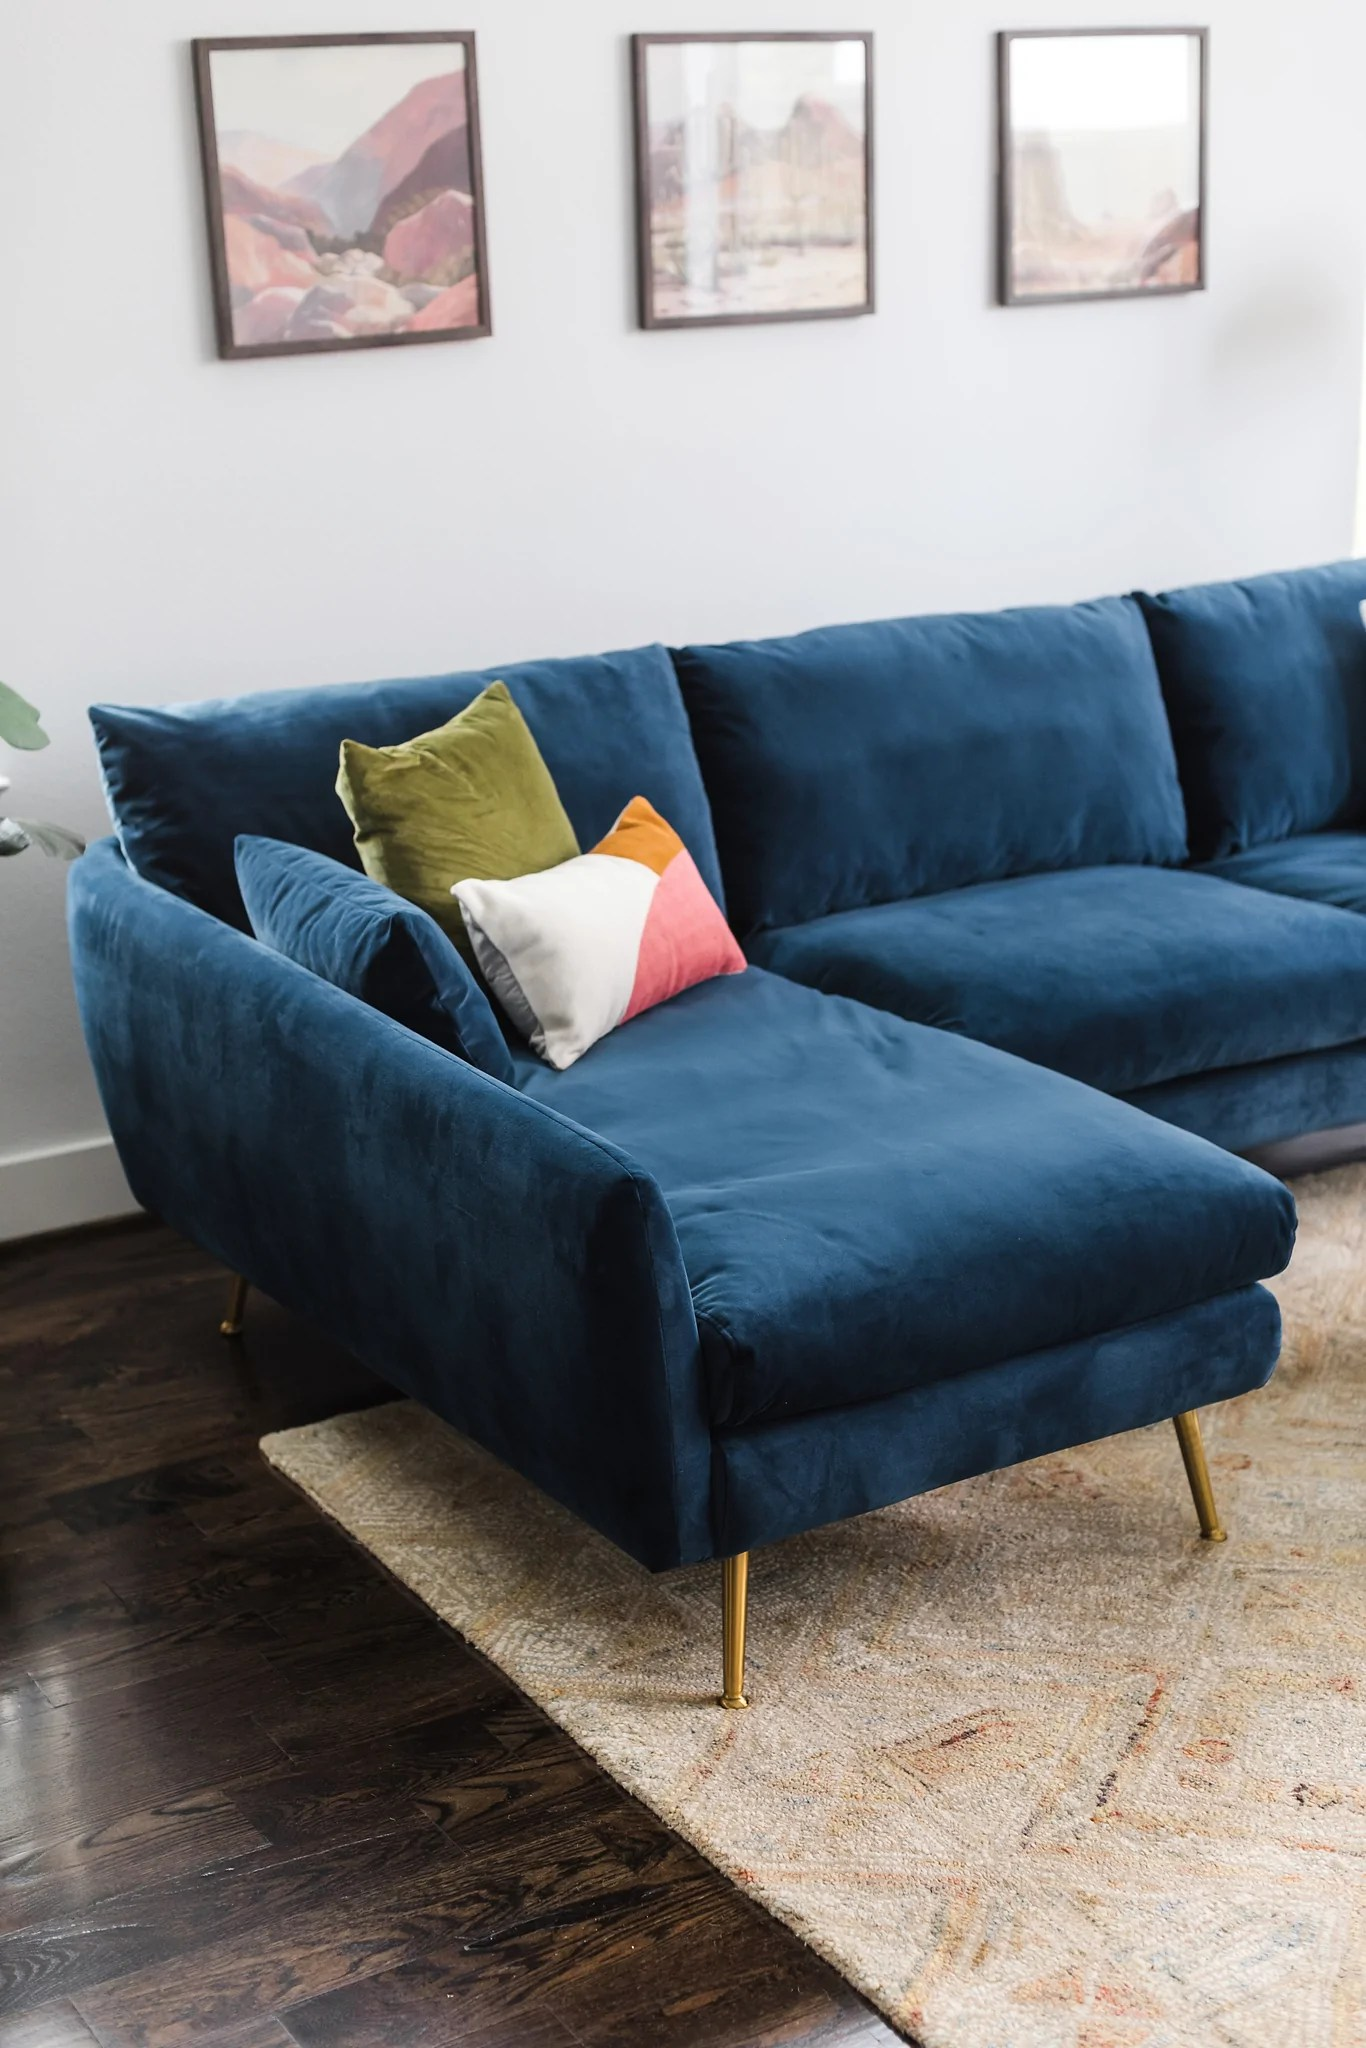 Albany Park Mid Century Modern Sectional Sofa Cozy Designer Couch Albany Park